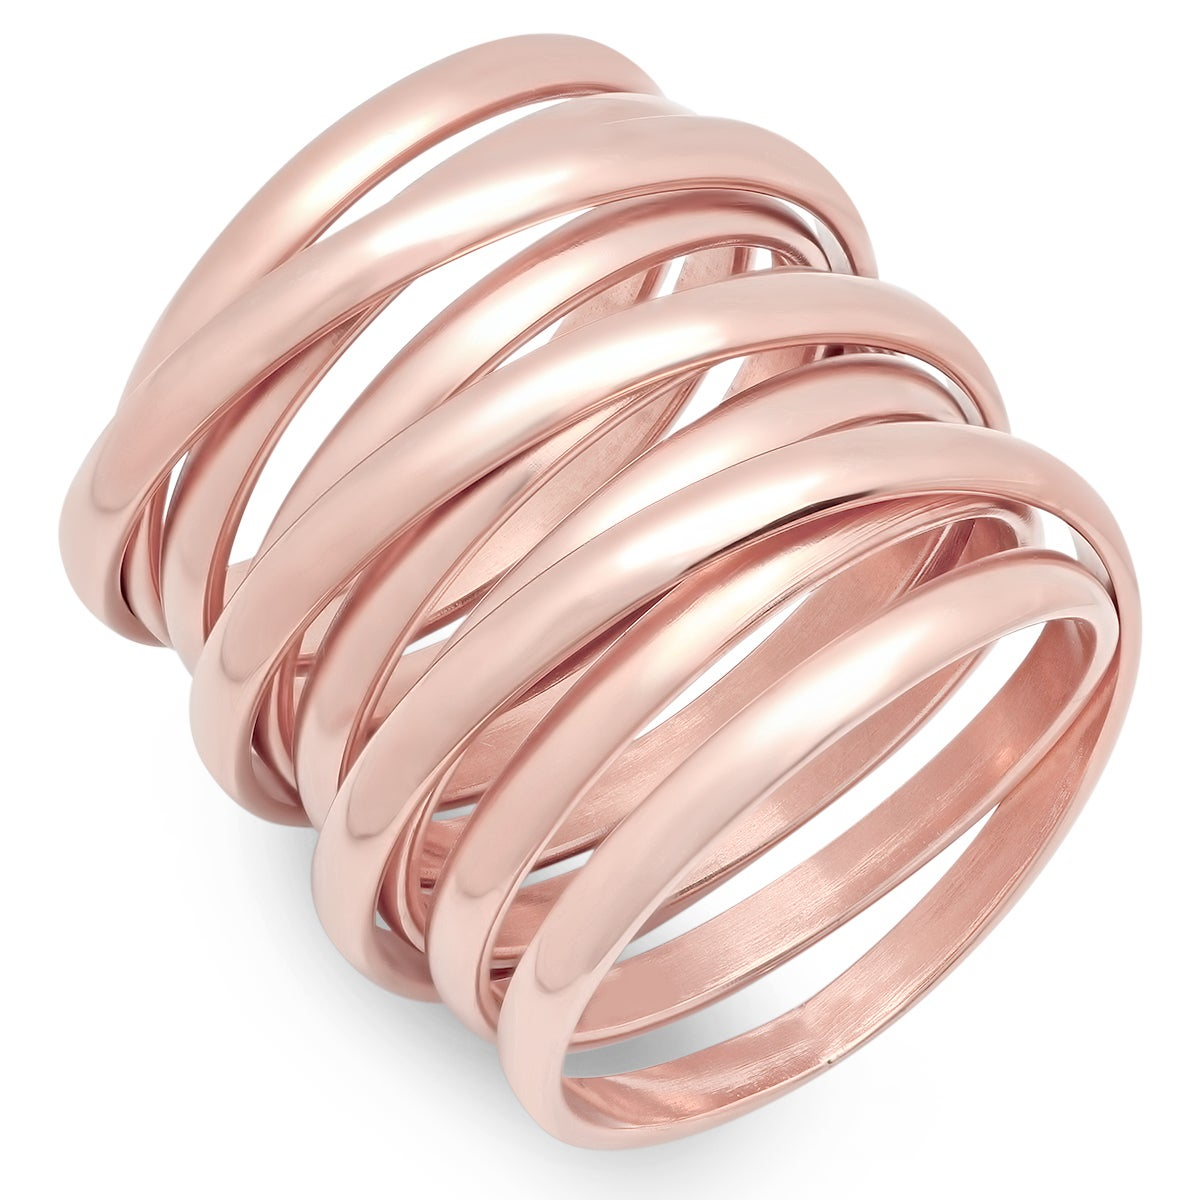 Stainless Steel, Rose Jewelry   Shop our Best Jewelry & Watches ...